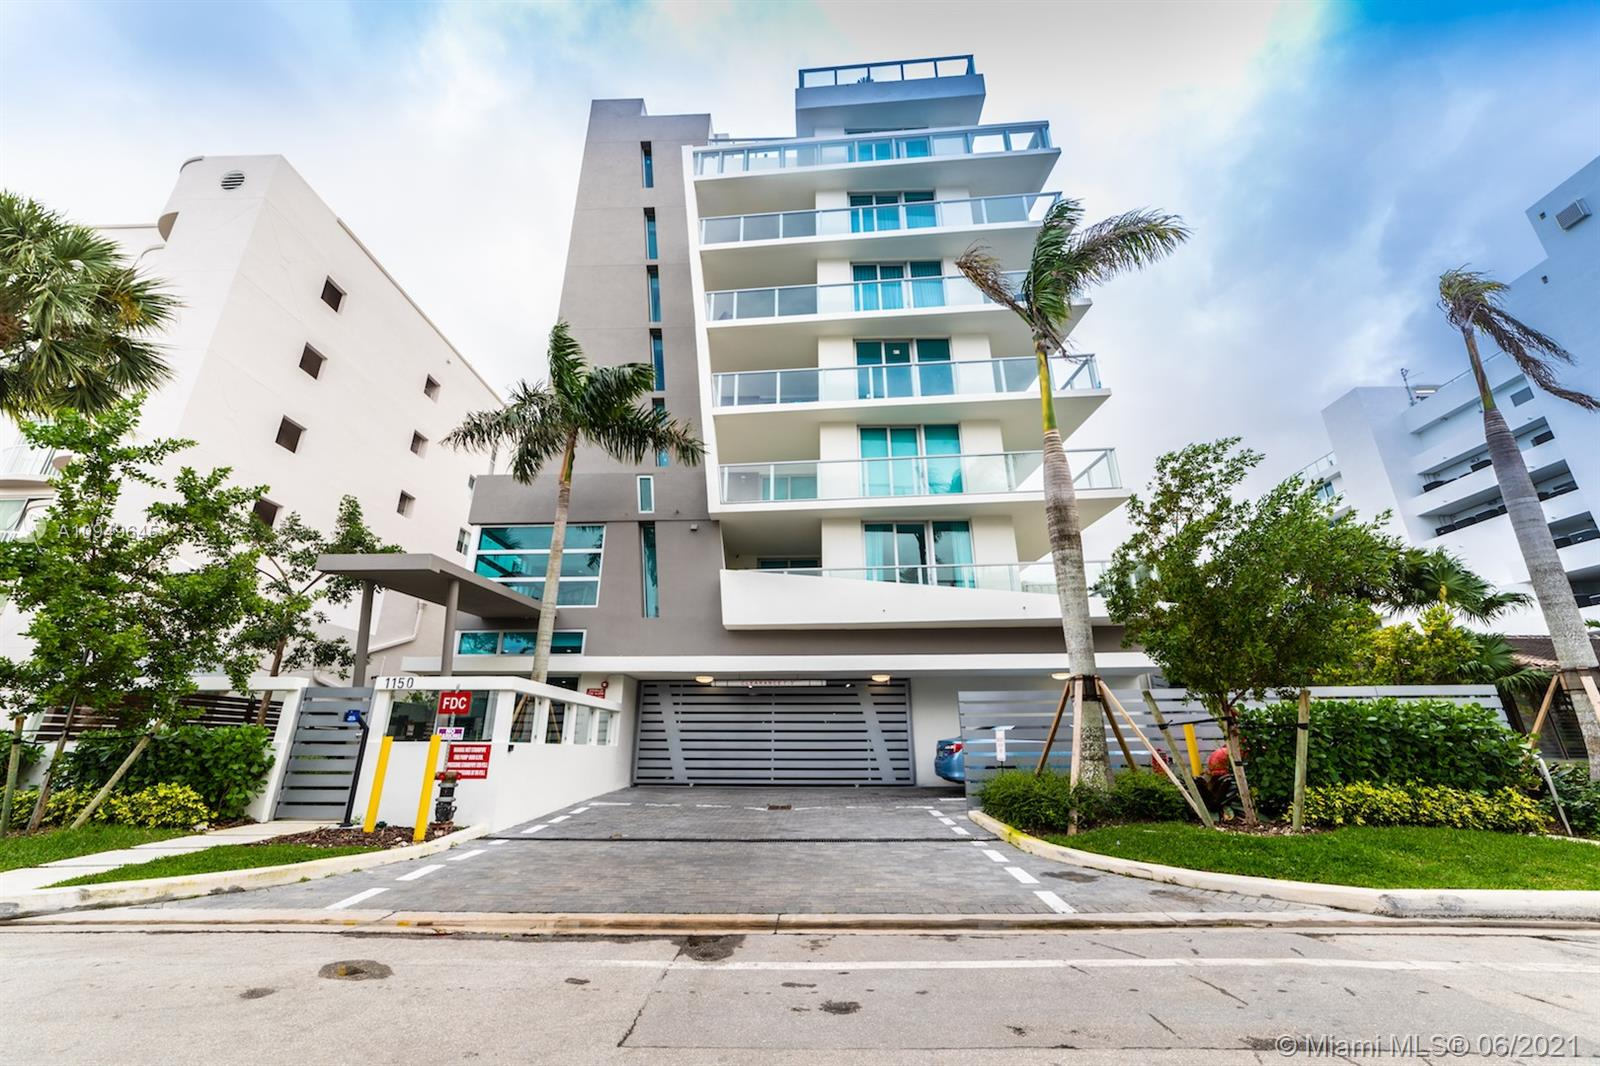 No Rental Restrictions, tastefully furnished condo in the Beautiful Bay Harbor Island. This boutique building with refined finishes has only 17 residences, rooftop pool, electronic concierge, automated door locks and blinds, smart thermostat. Two bedroom, two full bathrooms, summer kitchen, 2 covered parking spaces. All rooms with balcony access. Walk to the beach and the prestigious Bal Harbour Mall.